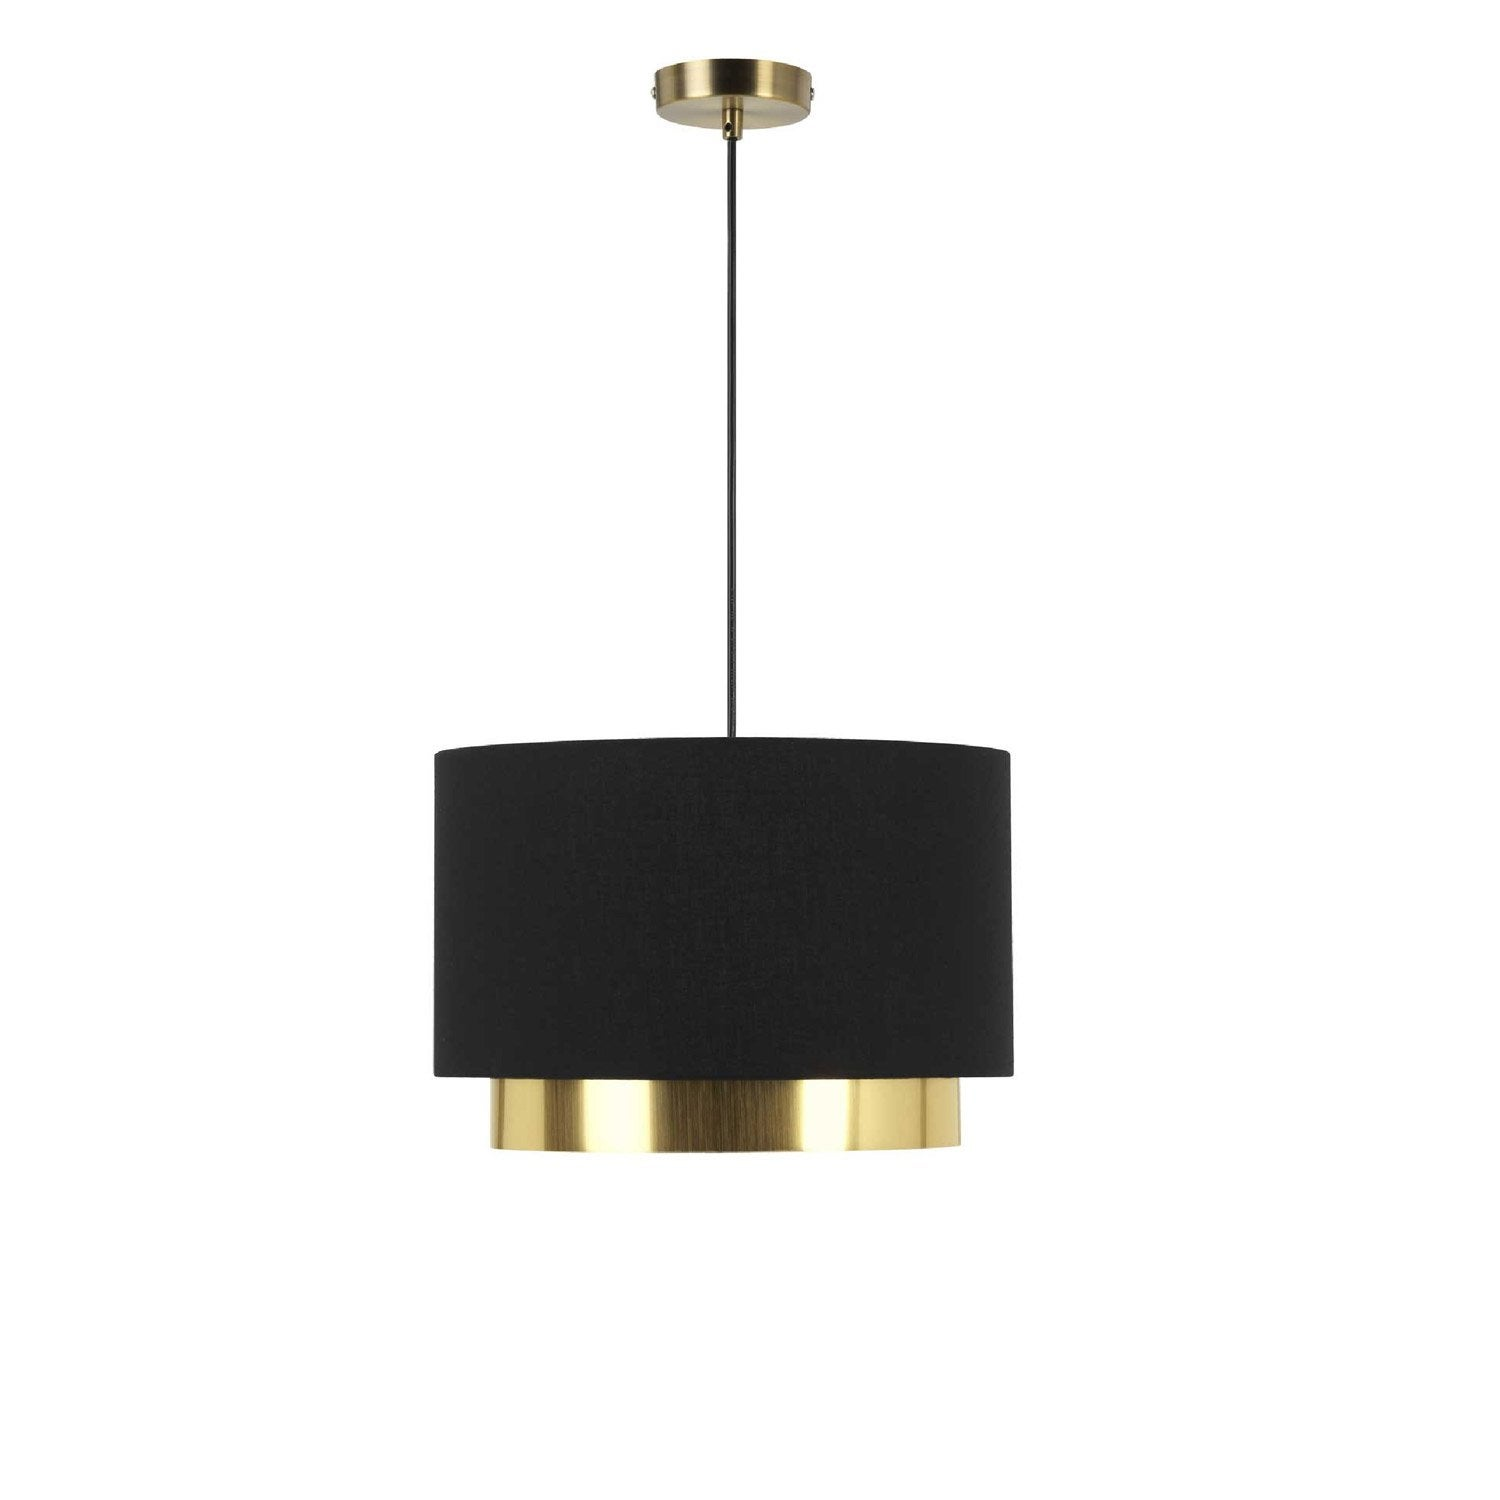 Suspension design dana tissus noir et dor 1 x 23 w for Suspension design pour salon